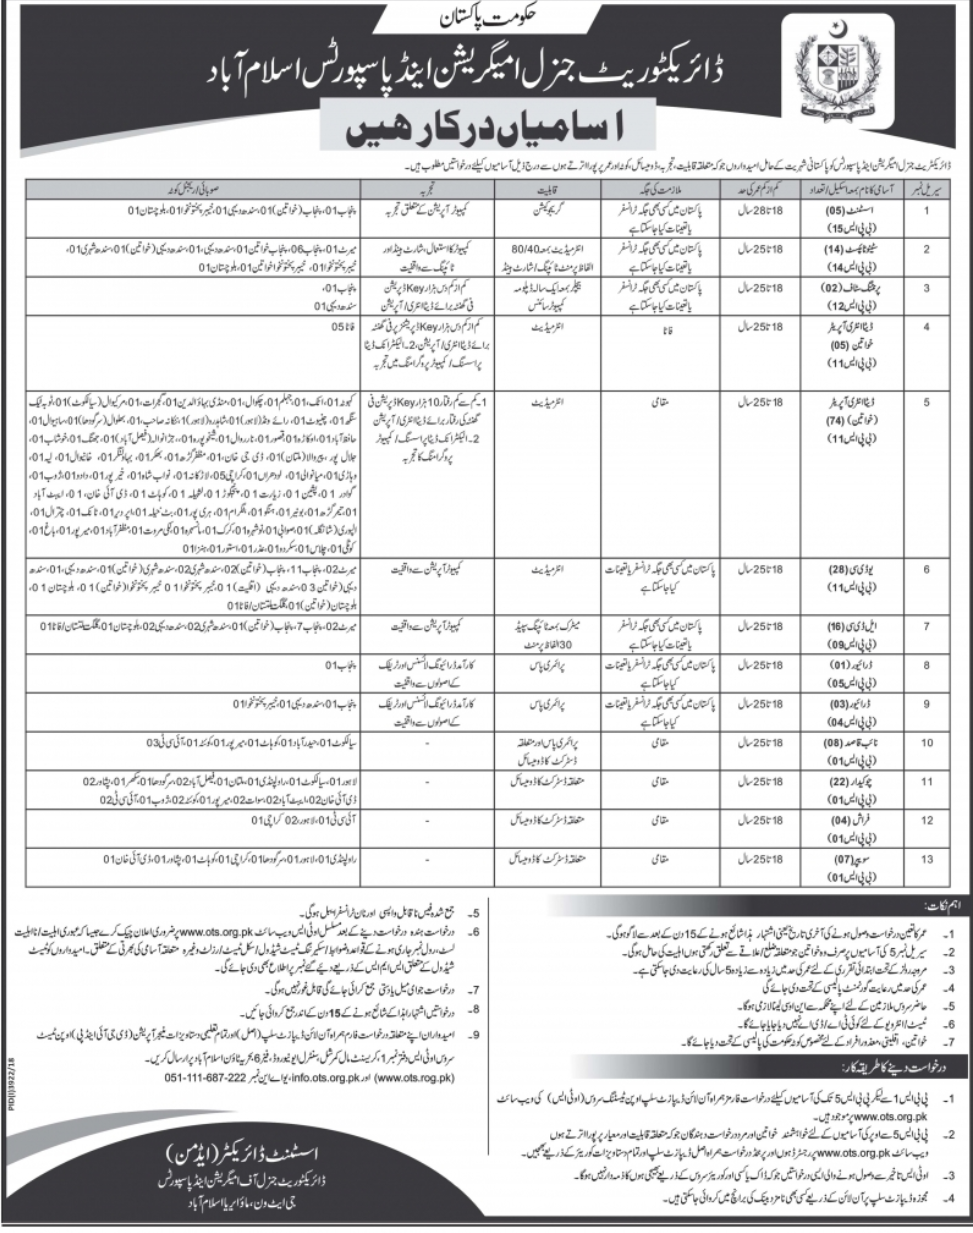 Directorate General Of Immigration And Passports Islamabad Jobs Via OTS